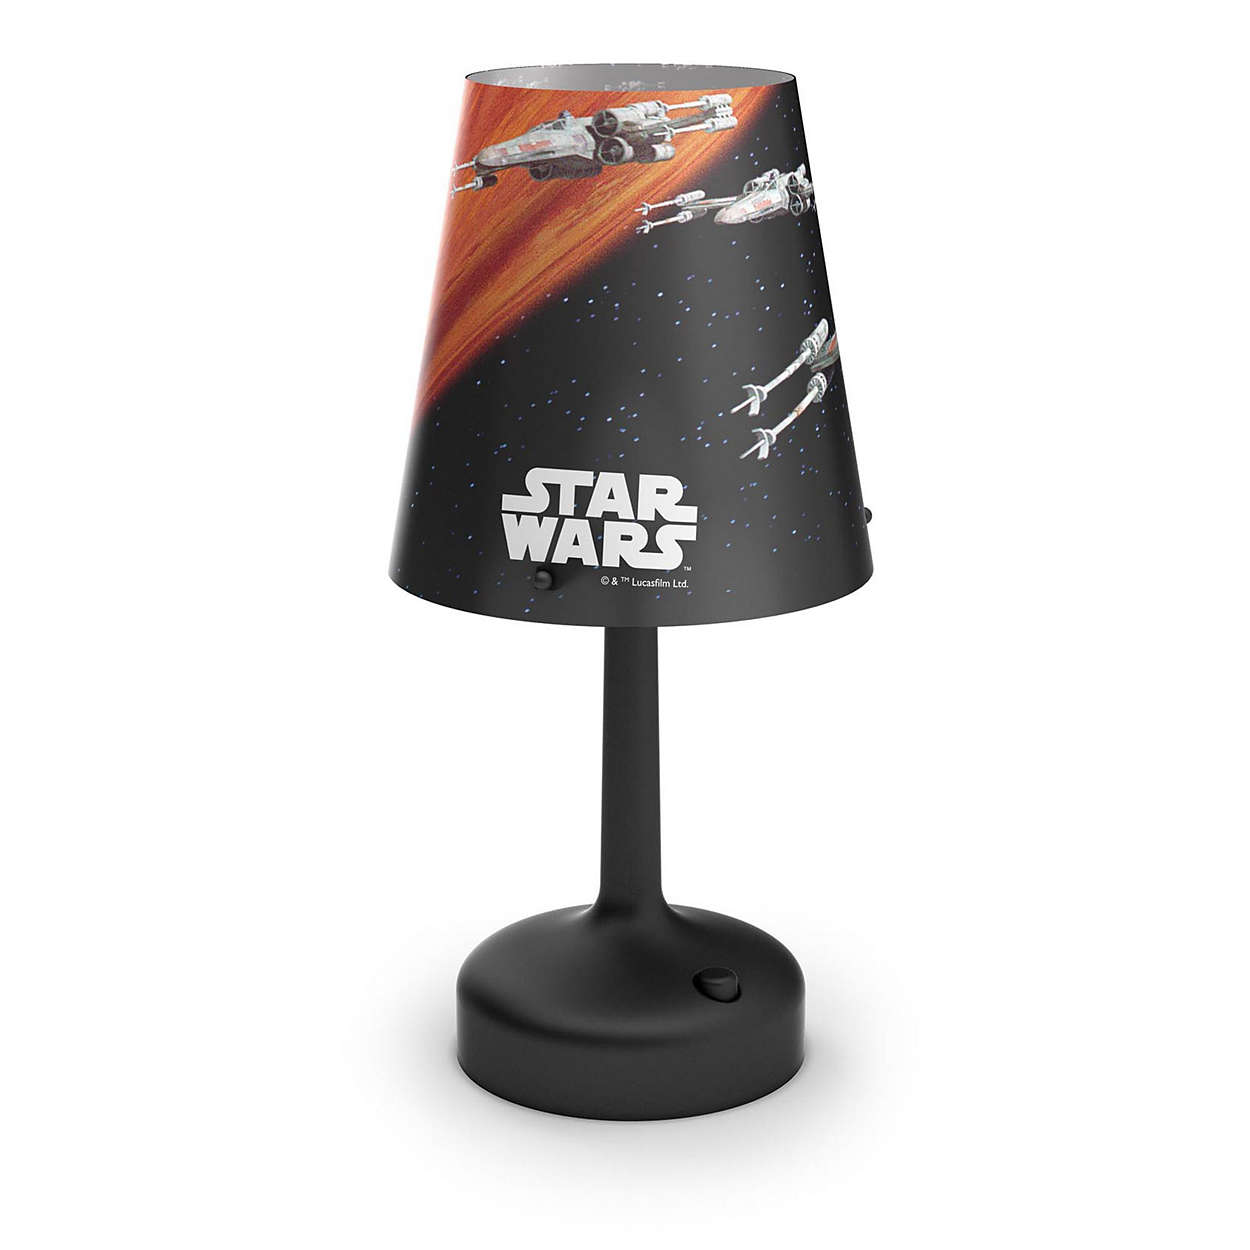 Frozen Slaapkamer Lamp : Frozen slaapkamer lamp tafellamp star wars